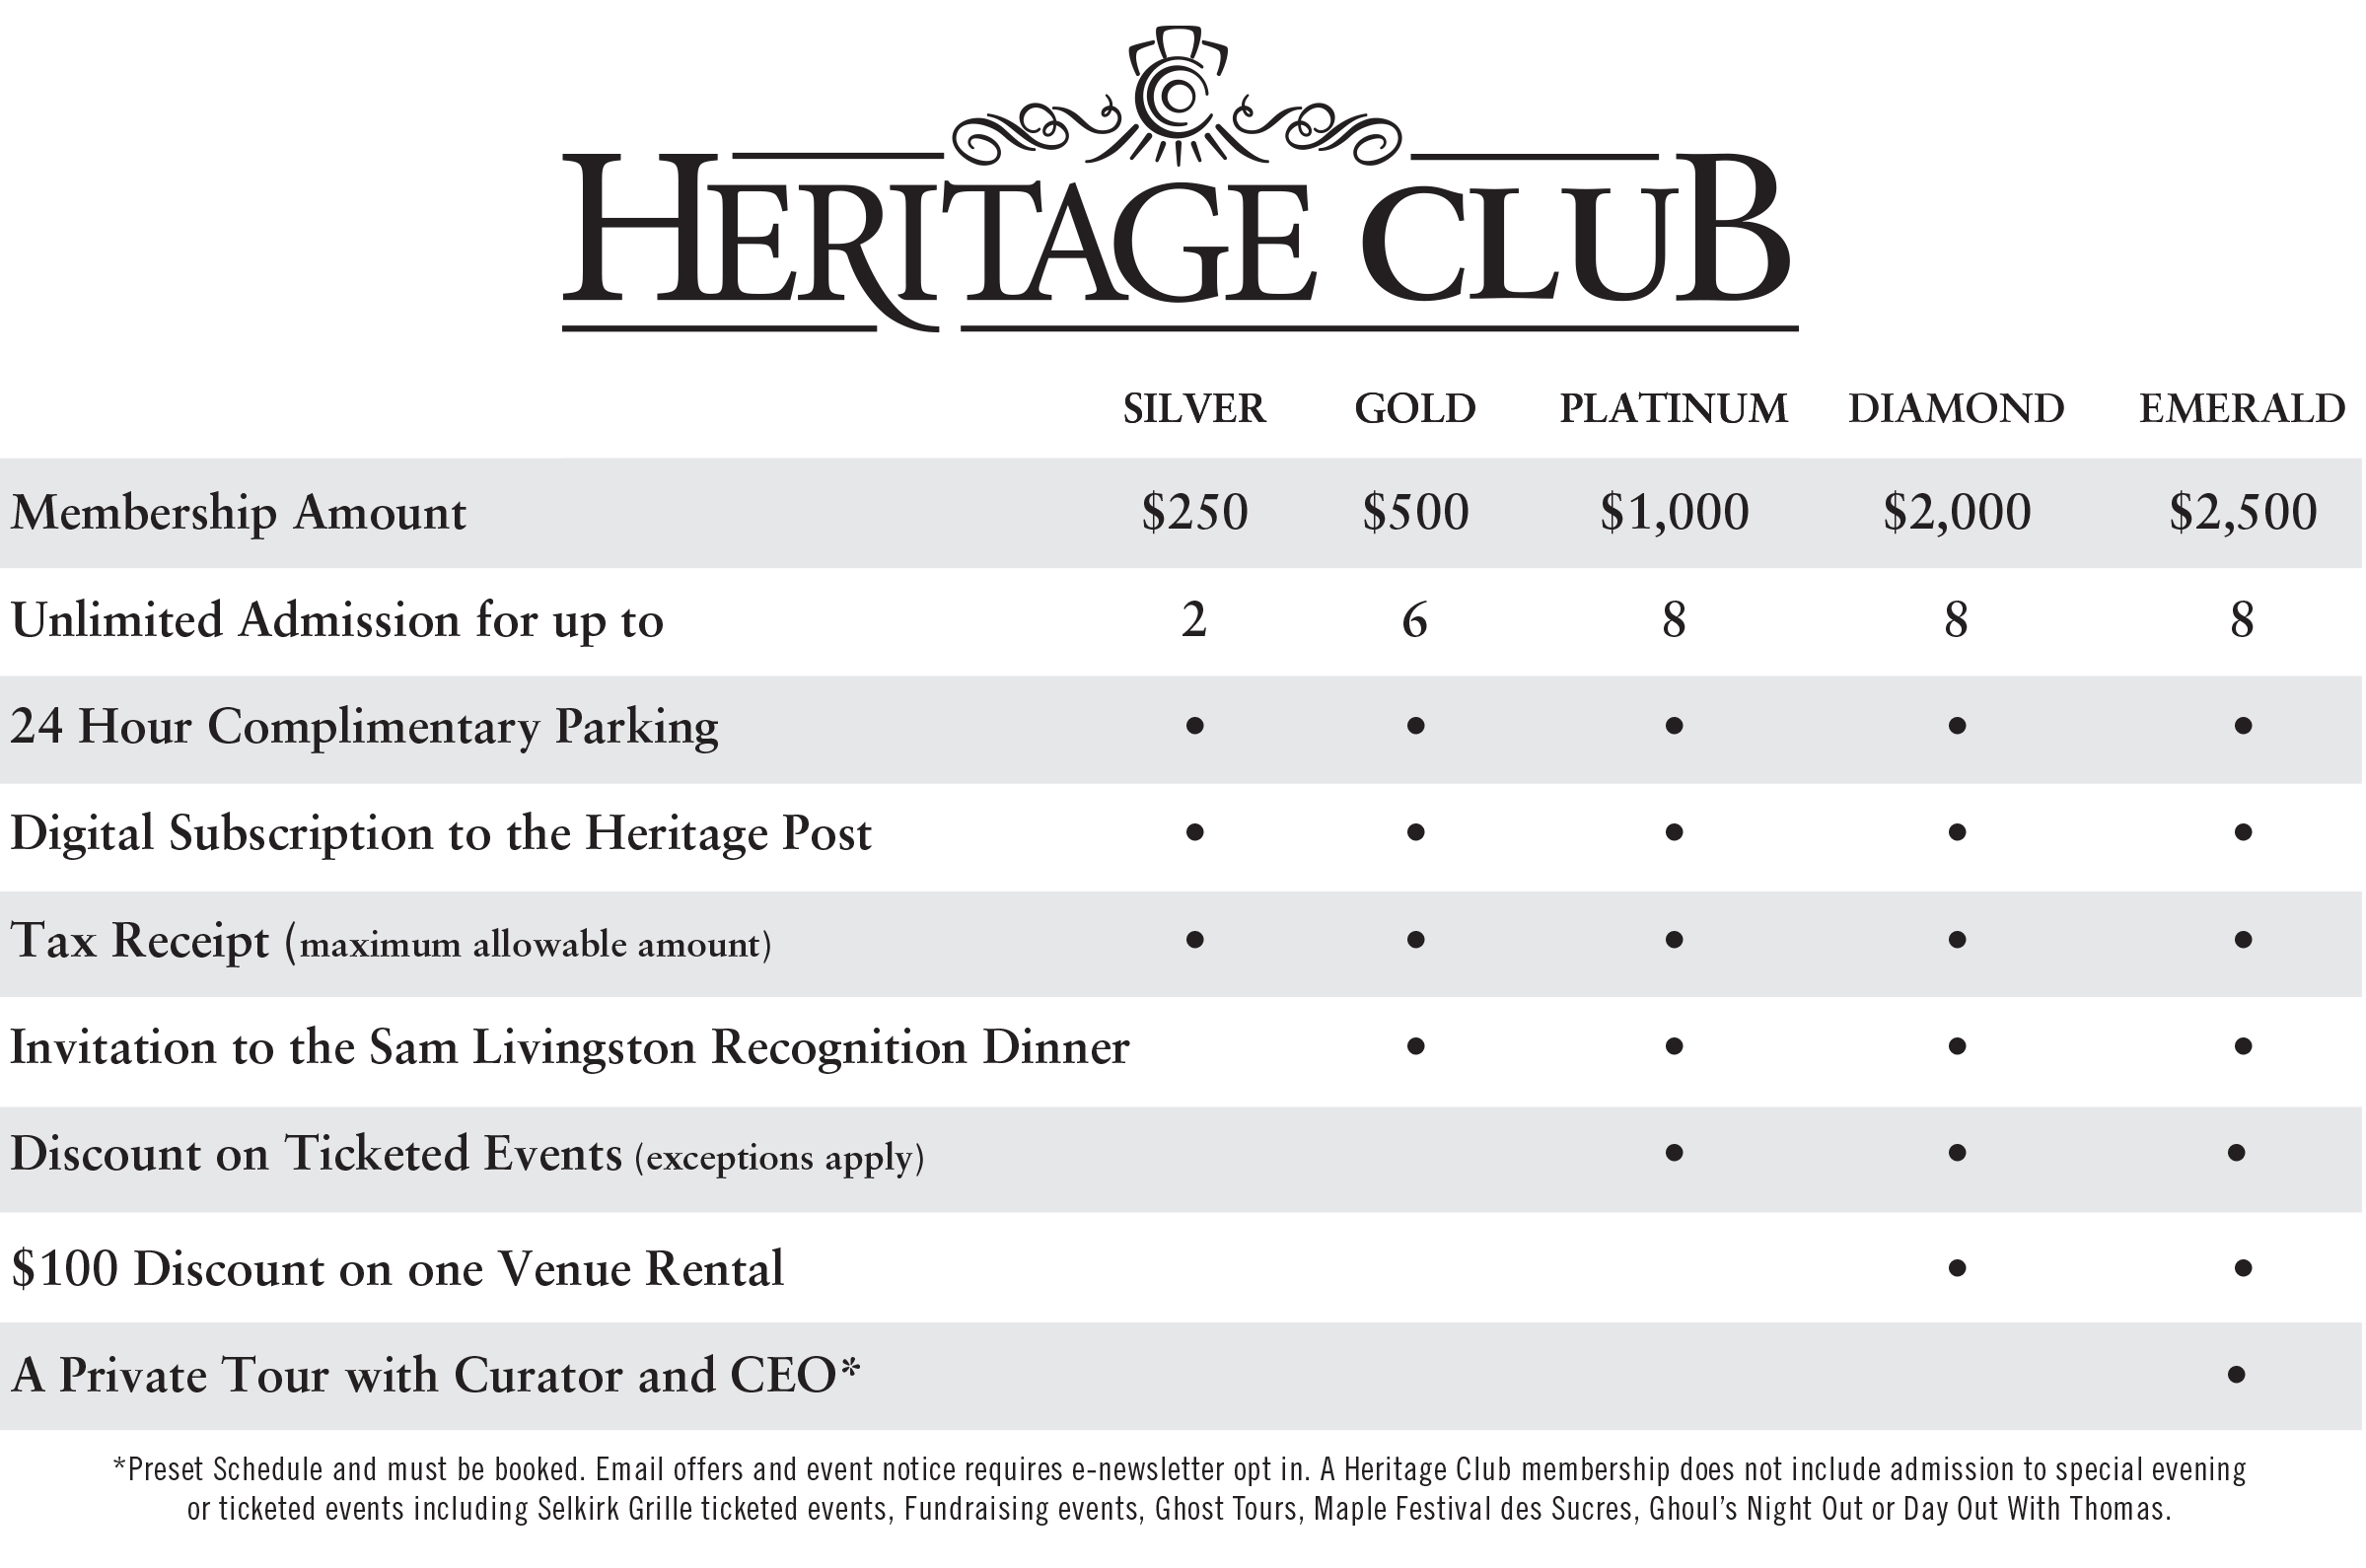 Heritage Club reward table